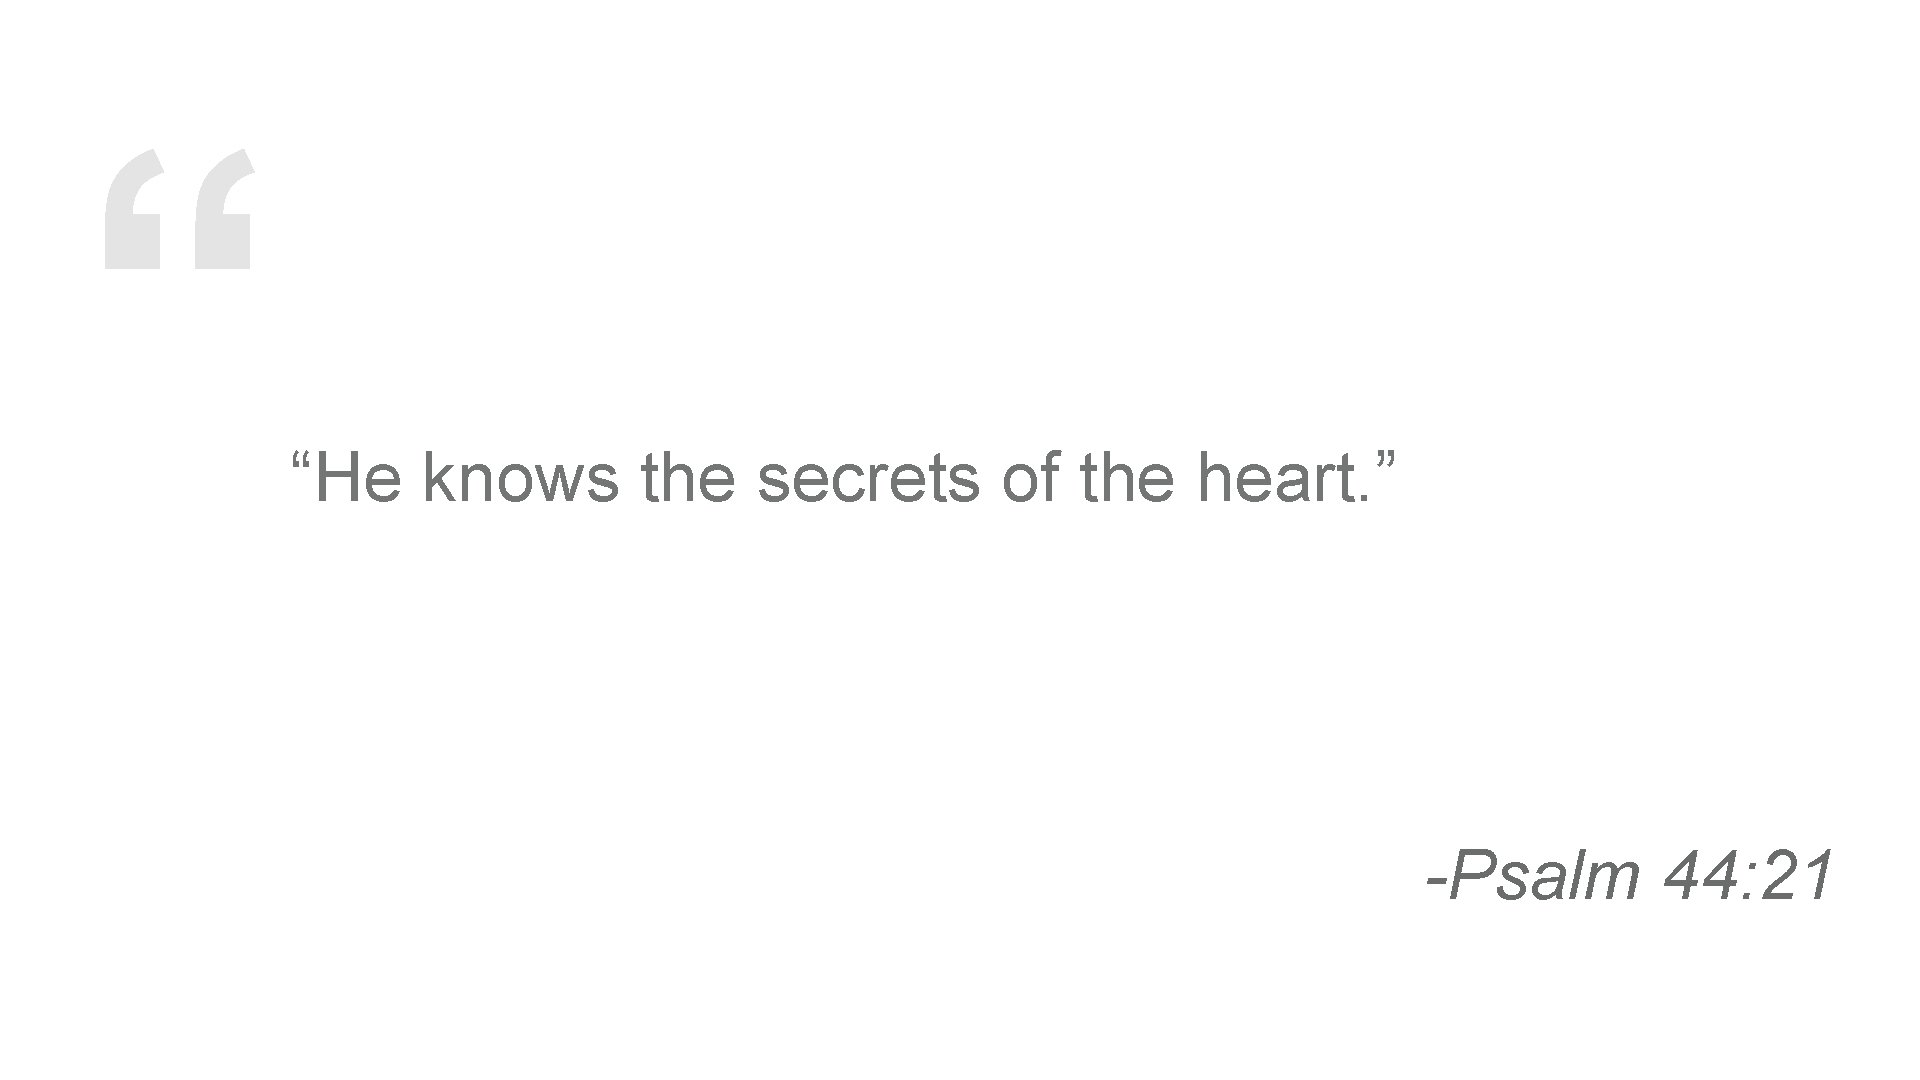 """"""" """"He knows the secrets of the heart. """" -Psalm 44: 21"""